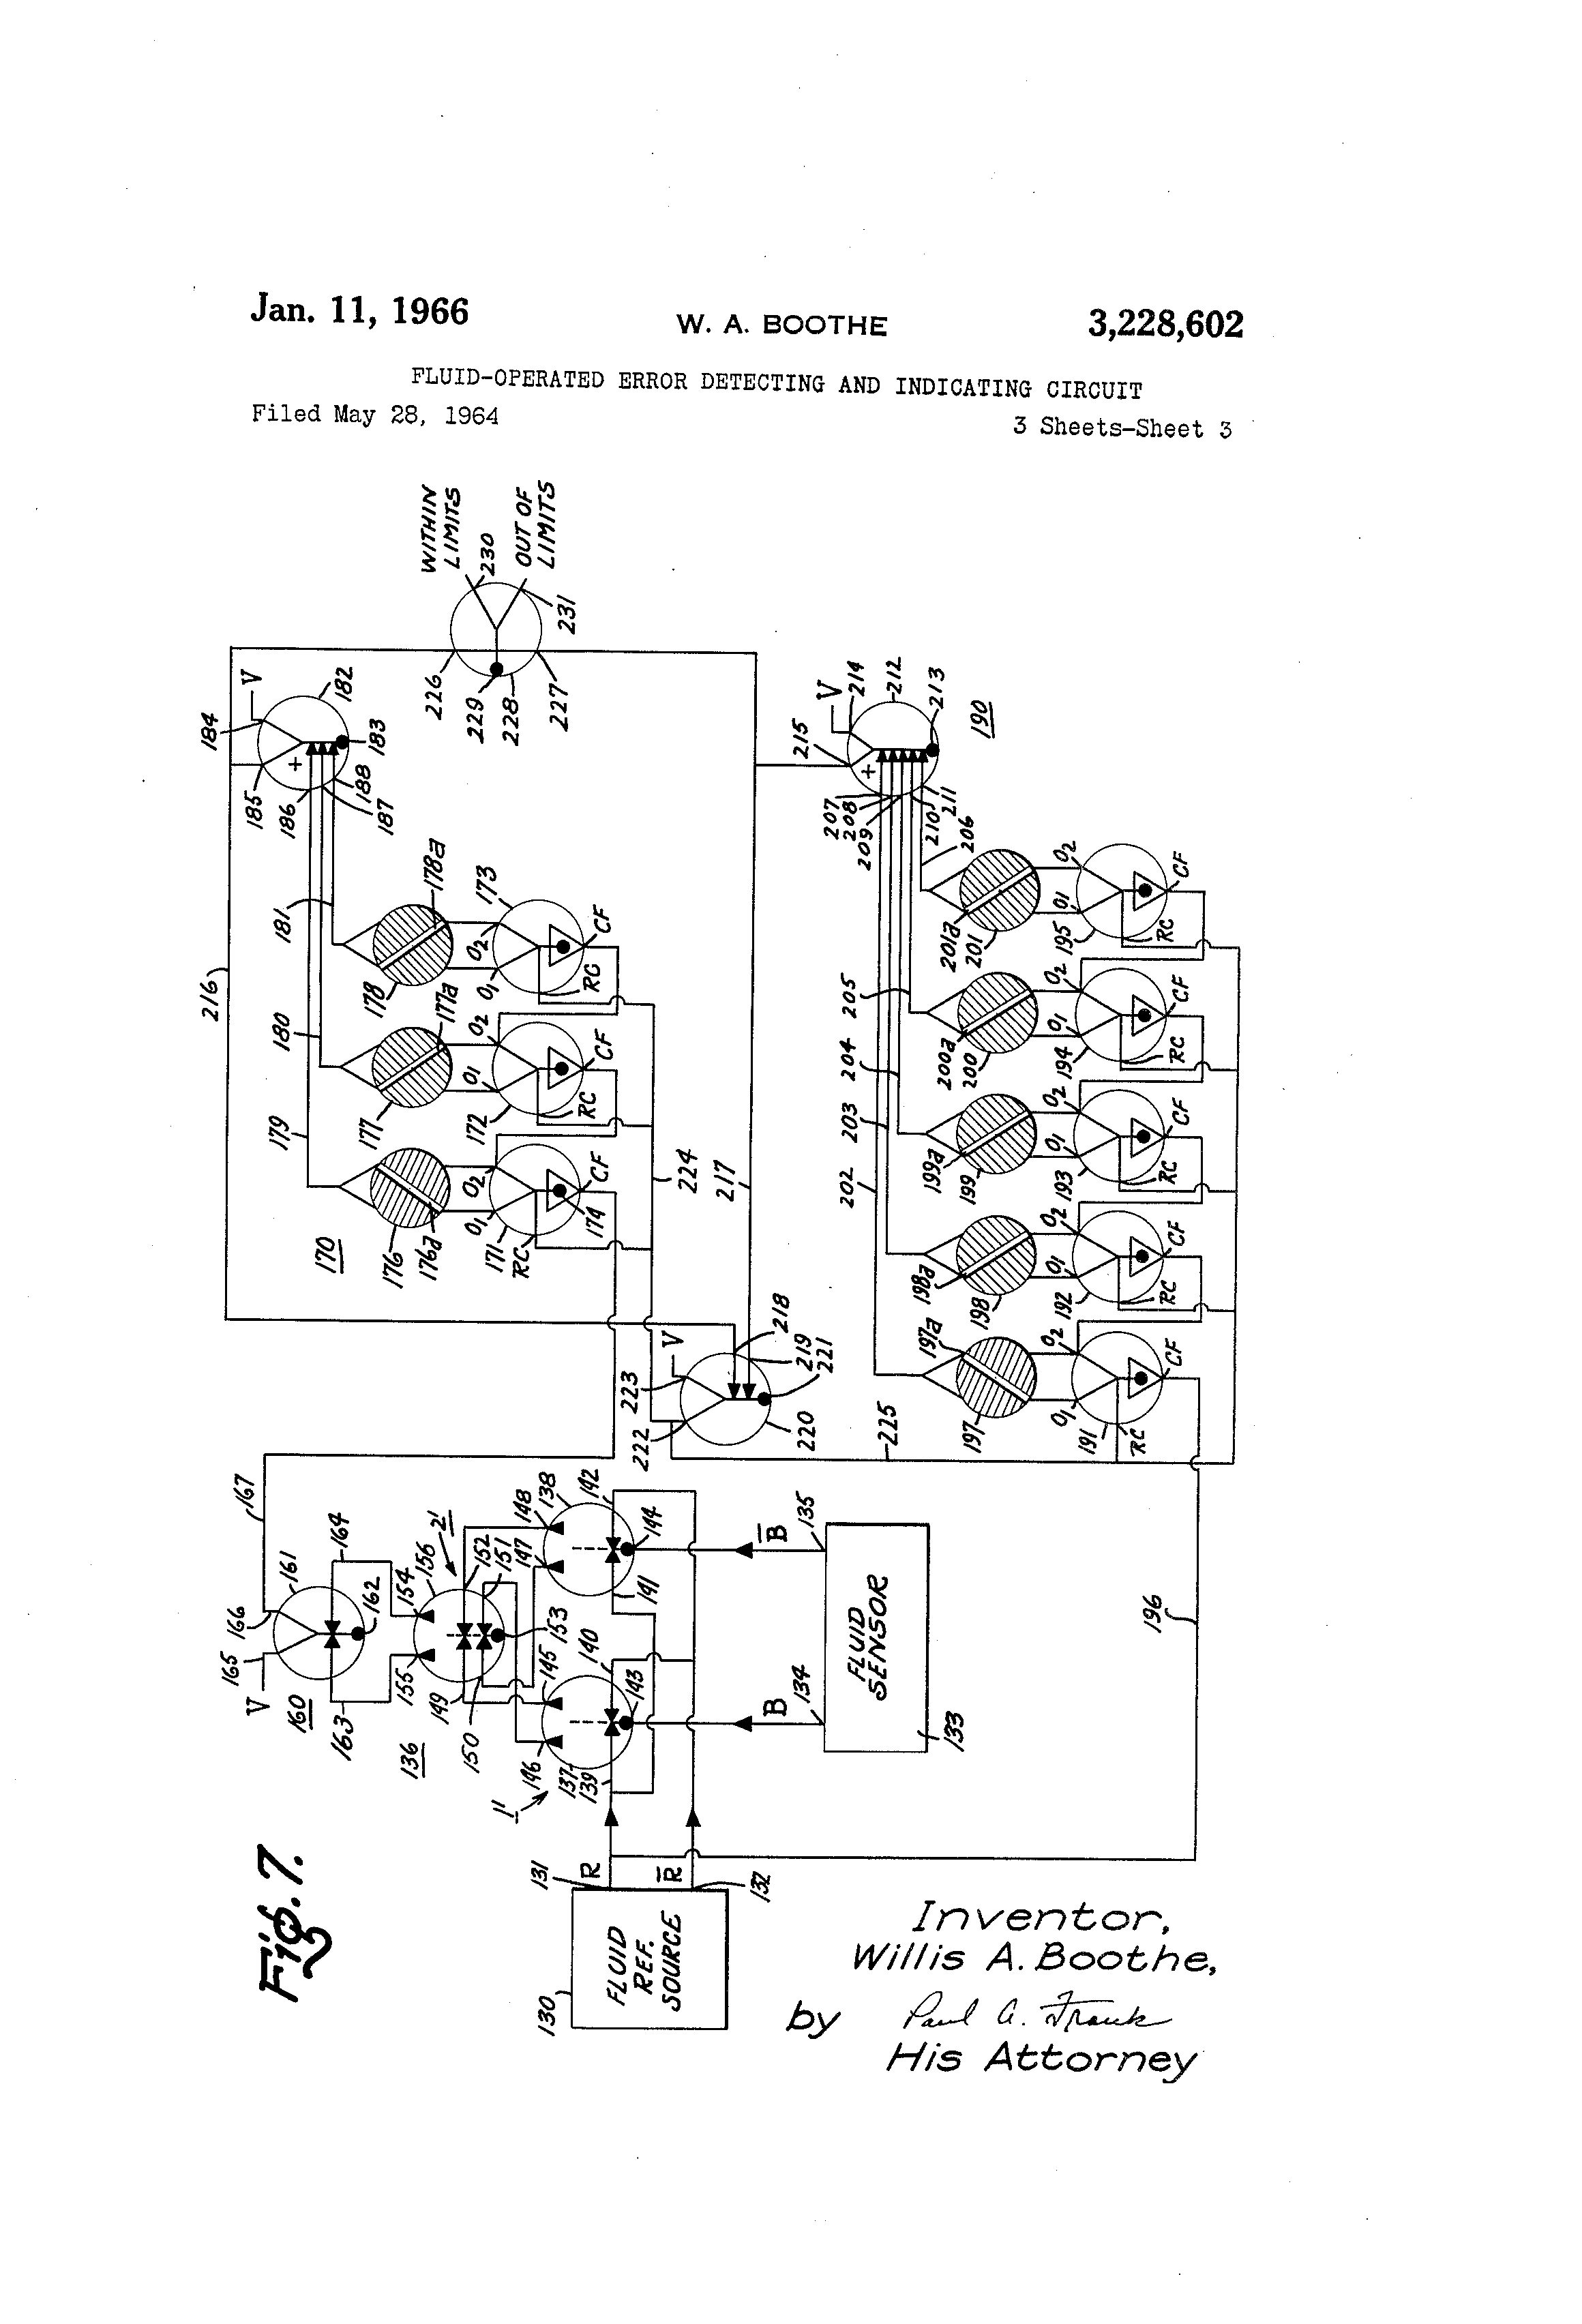 brevet us3228602 fluid operated error detecting and indicating circuit Customer Service Representative Resume Cover Letter patent drawing